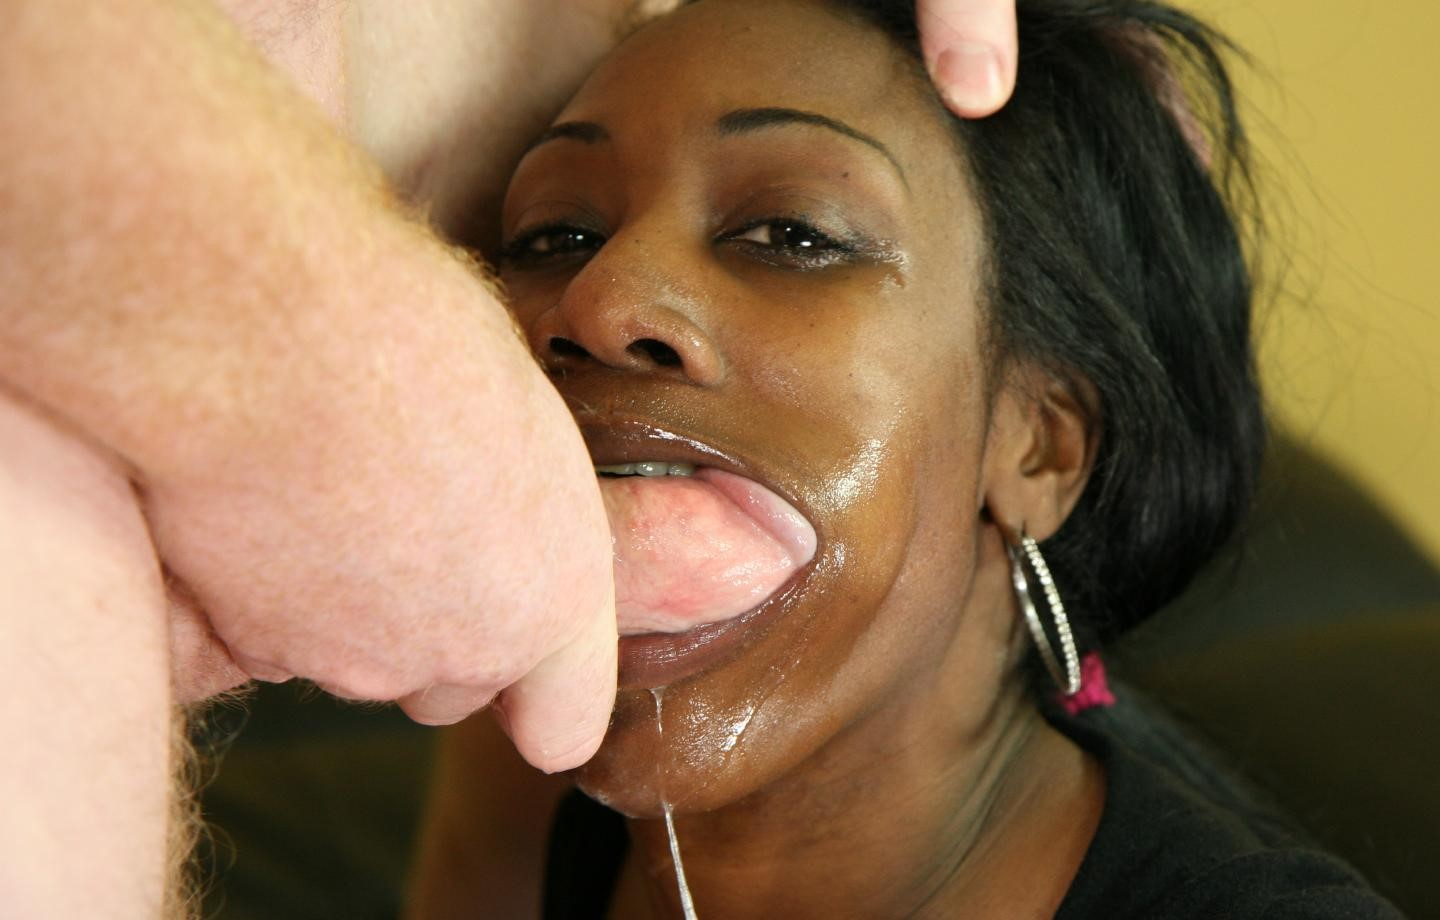 ghetto-gaggers-mouth-abuse-bj